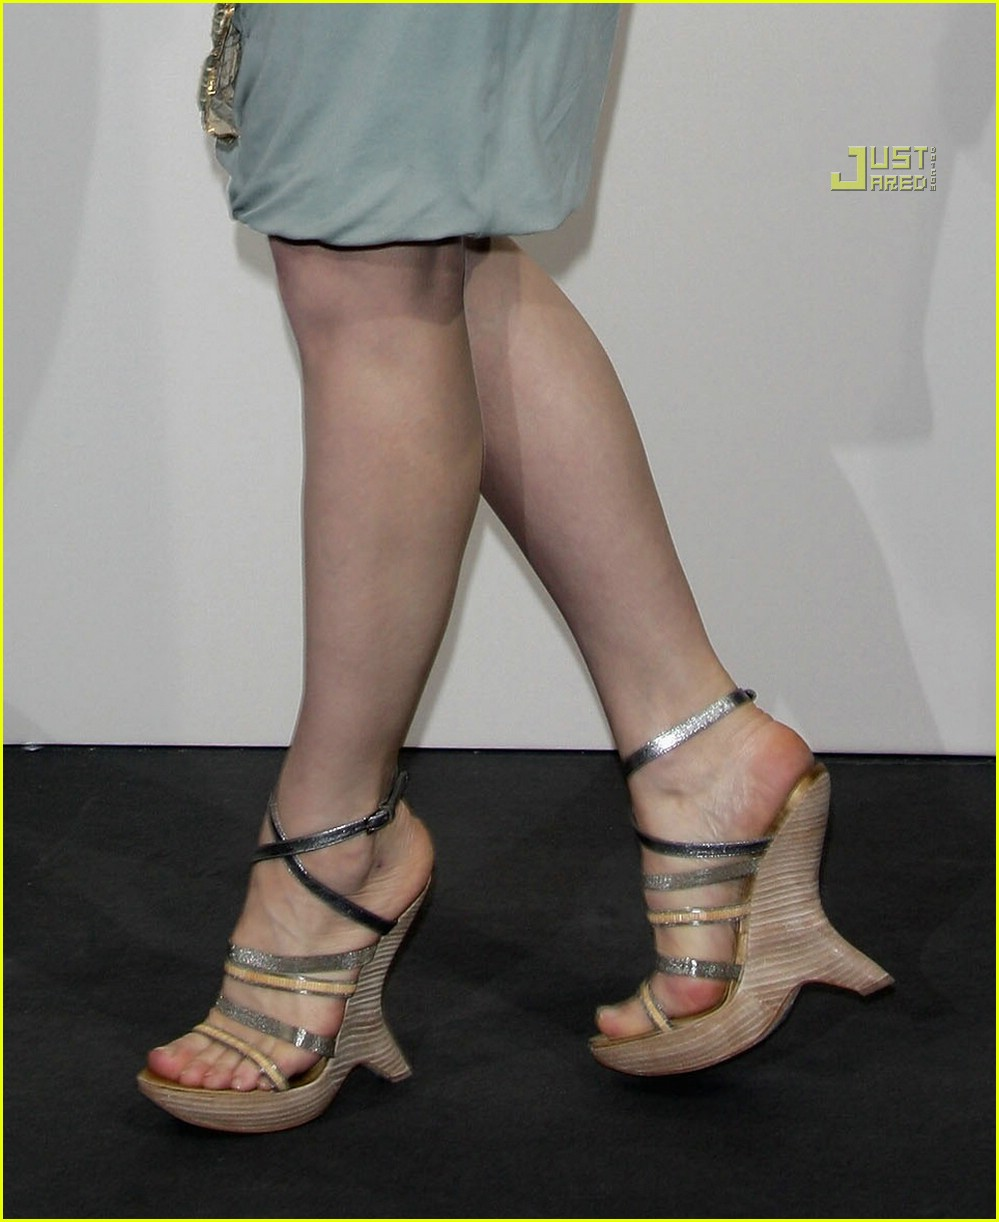 Feet Cate Blanchett nudes (22 foto and video), Tits, Sideboobs, Selfie, butt 2006